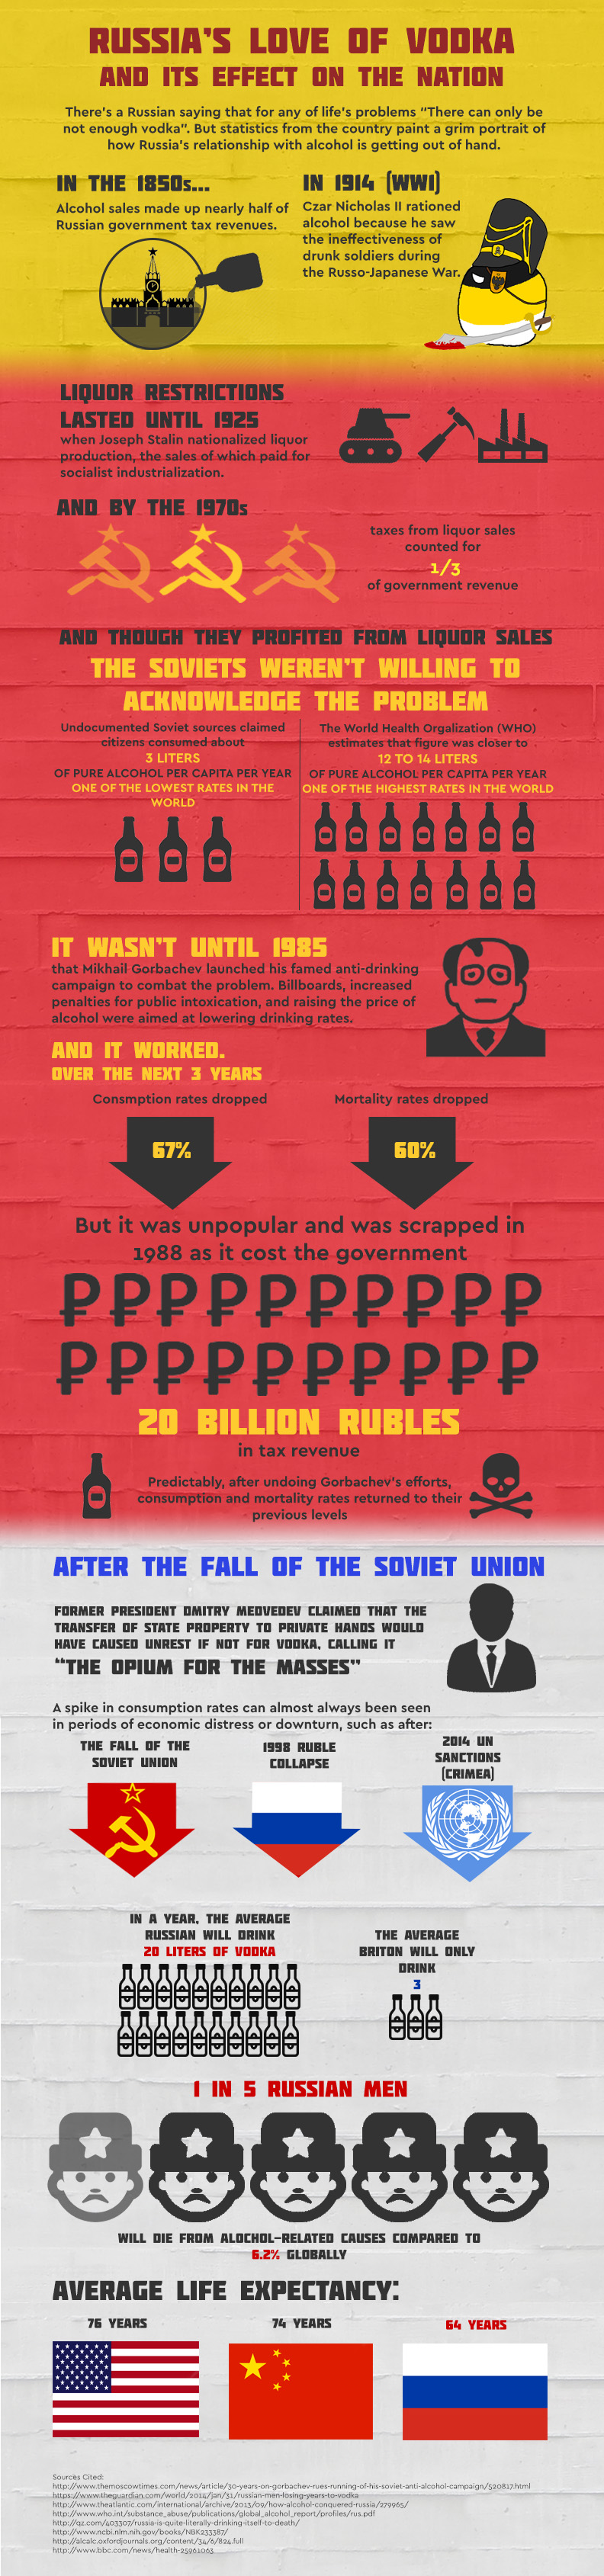 Alcohol consumption in Russia